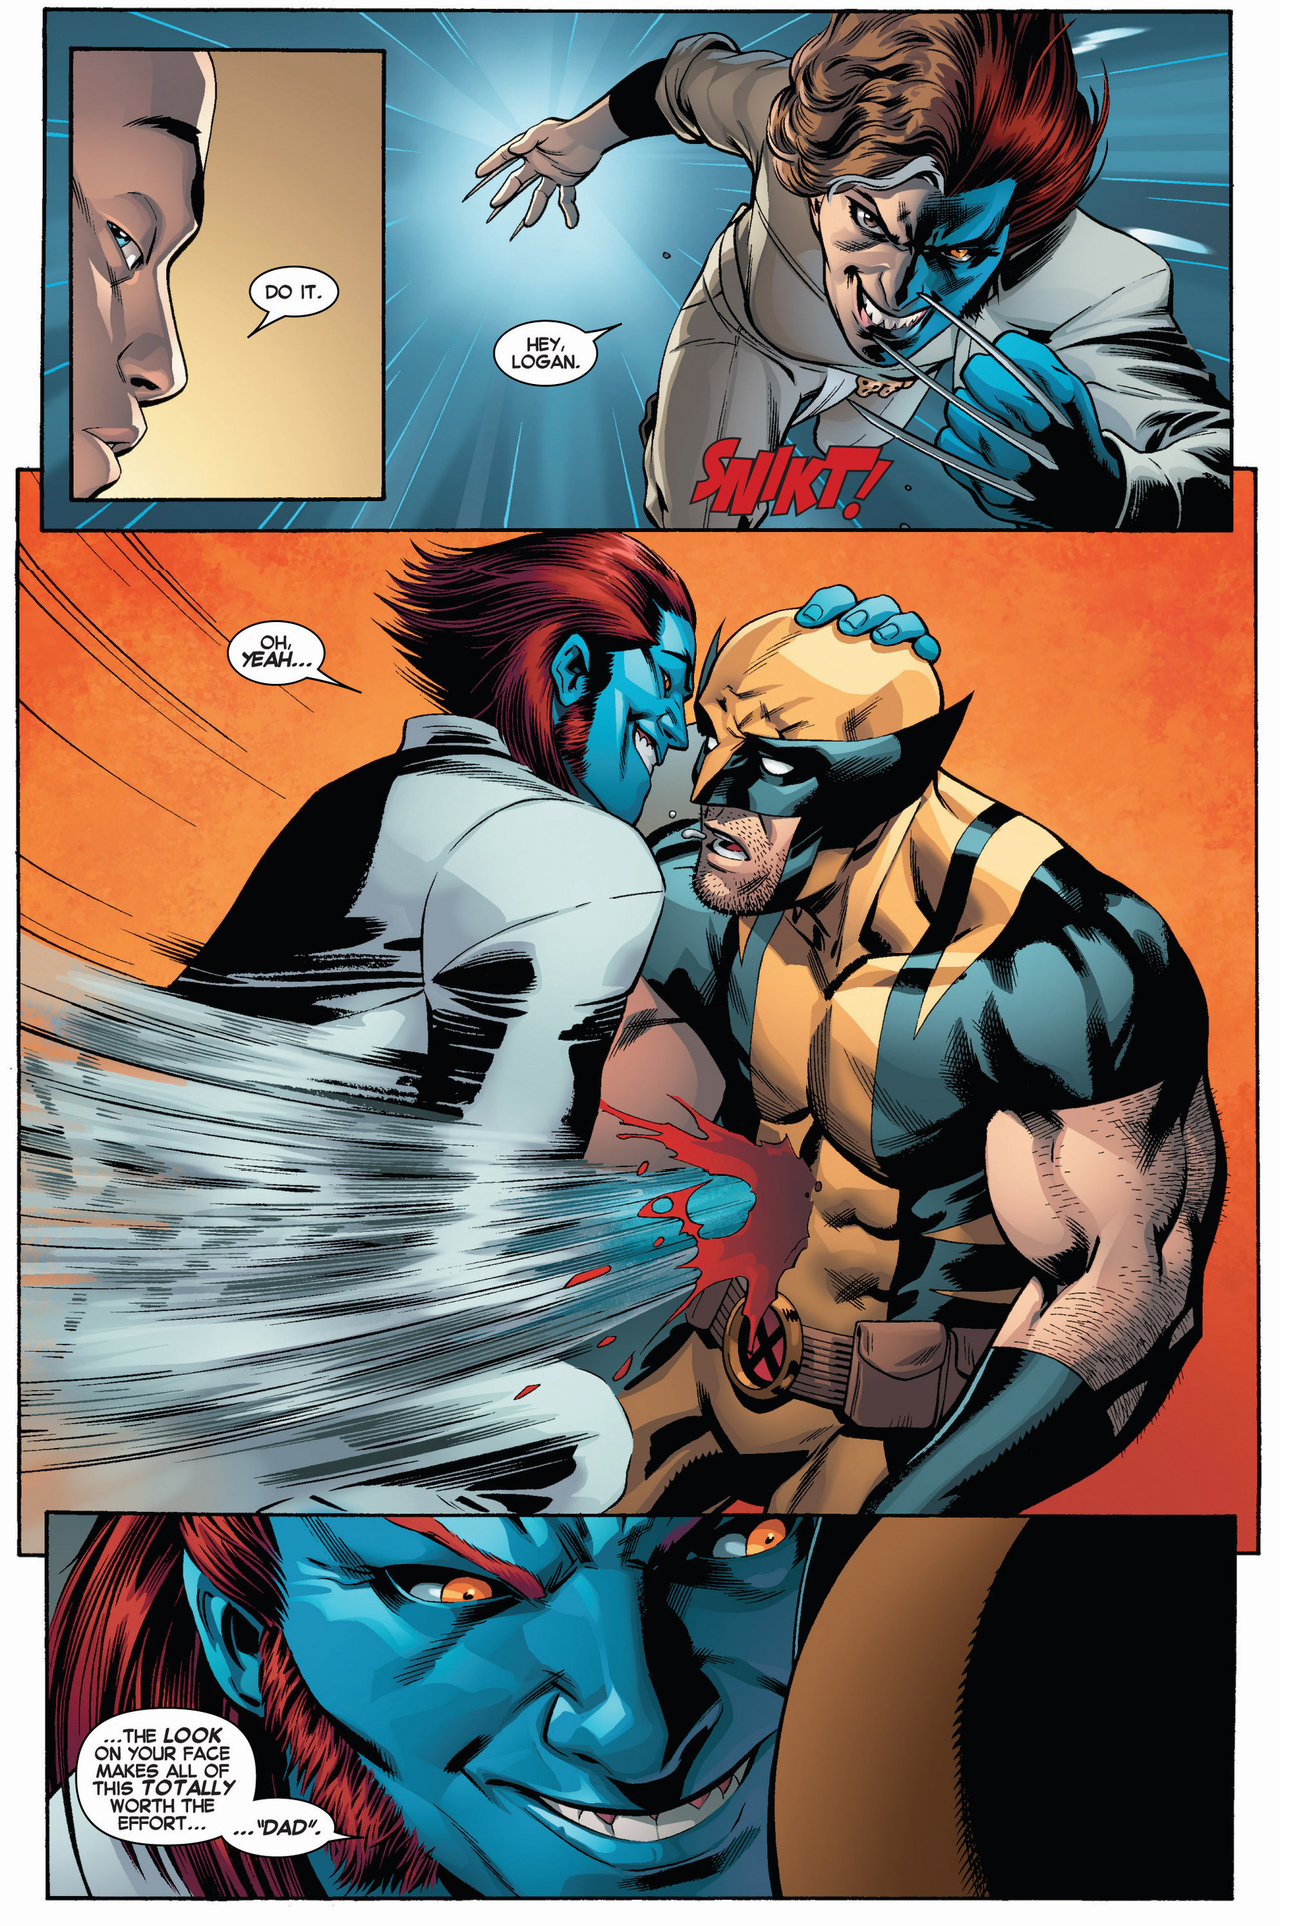 raze attacks wolverine